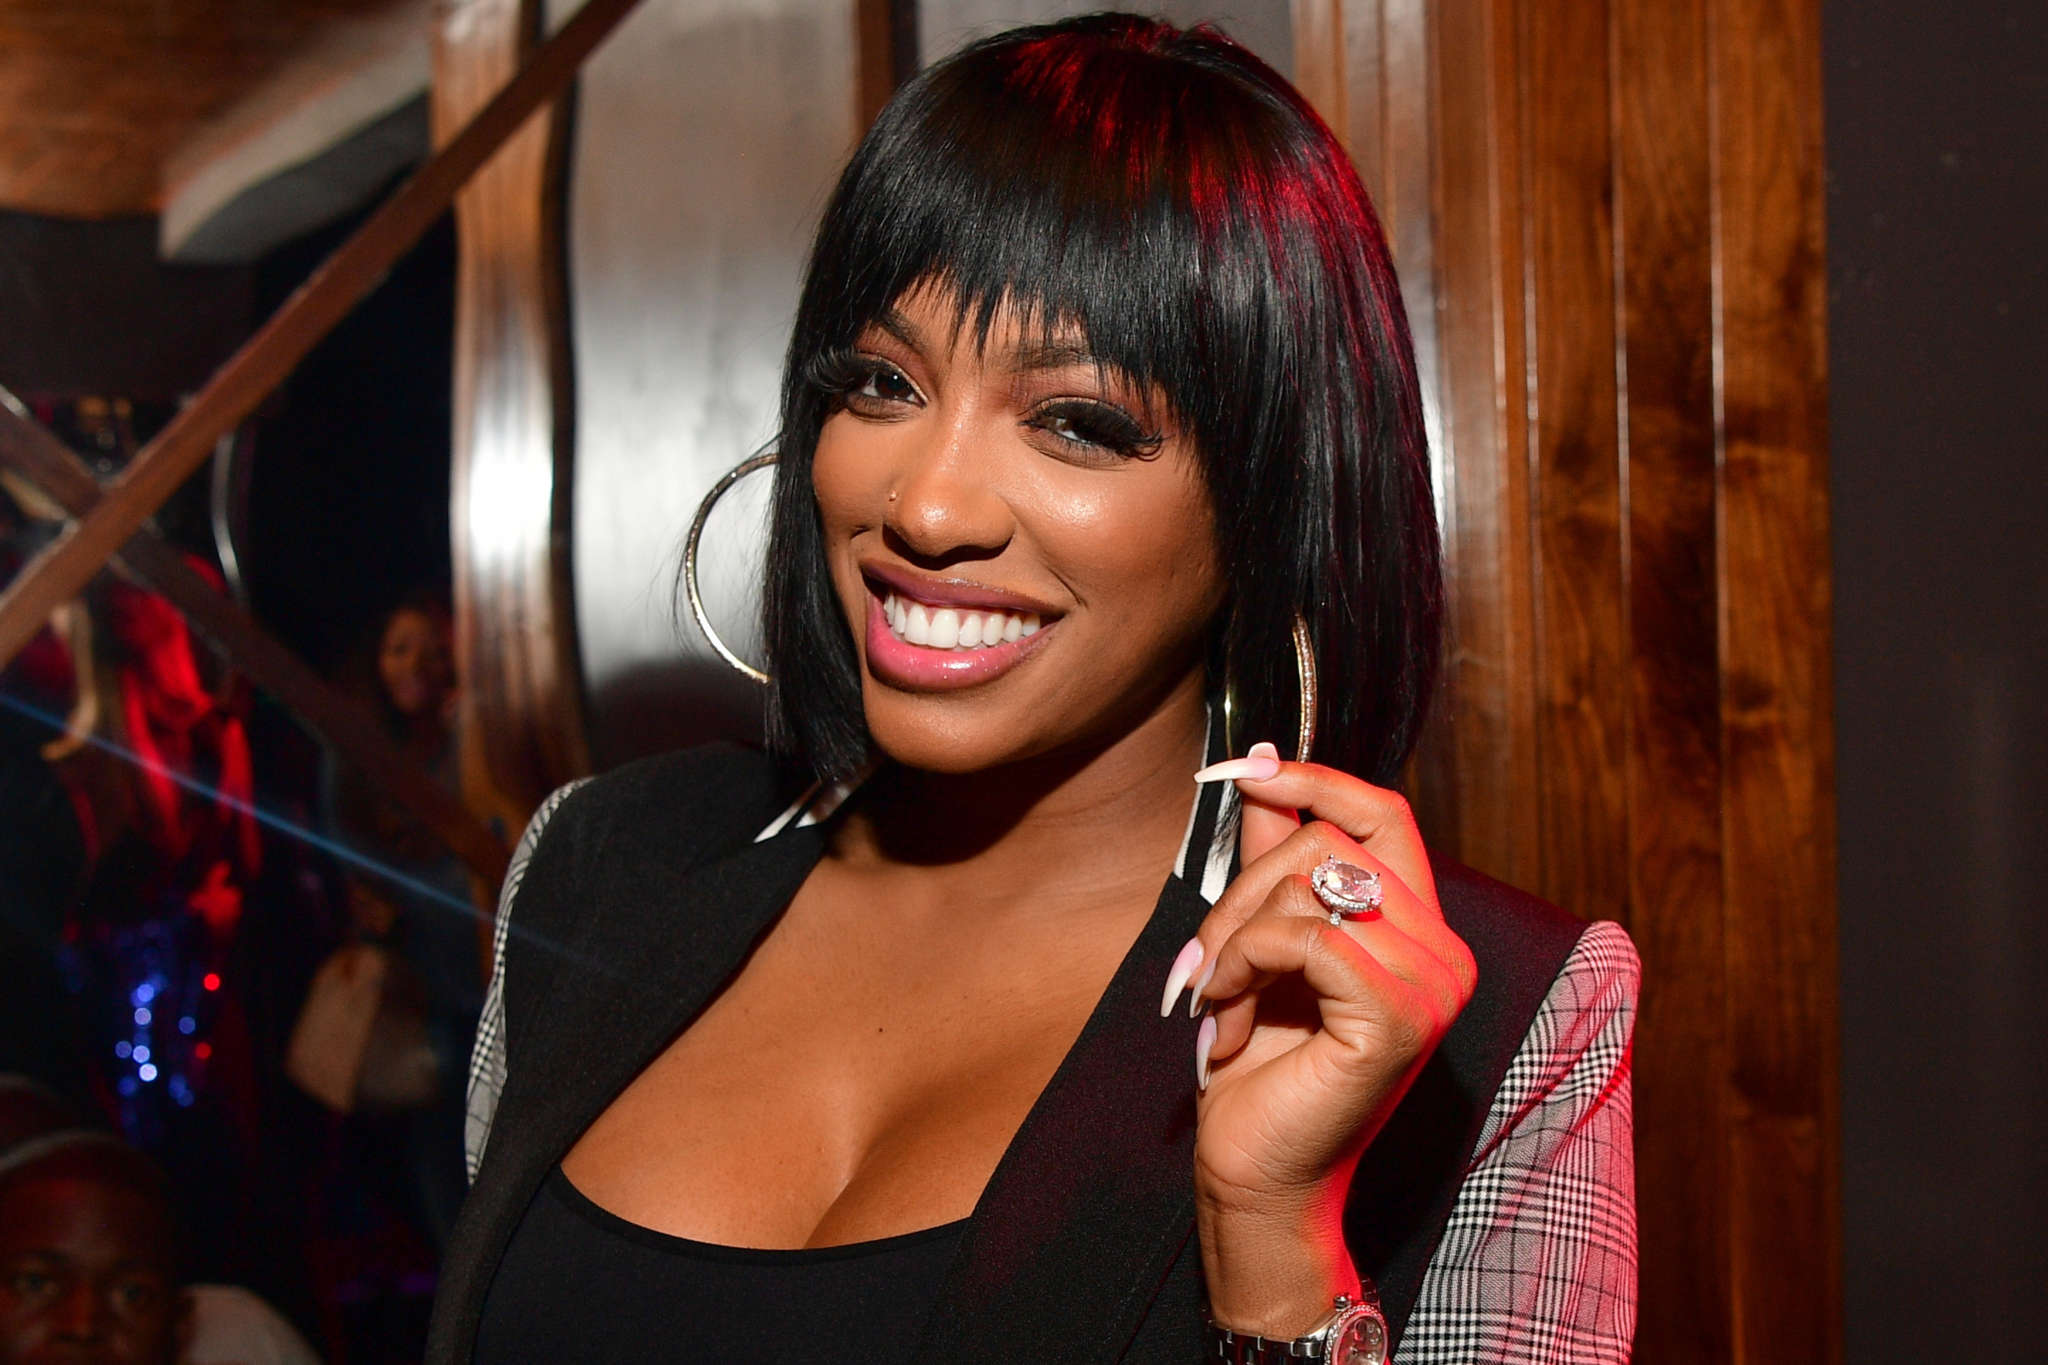 Porsha Williams Sais She Had More Jail Time Than The Cops Who Killed Breonna Taylor